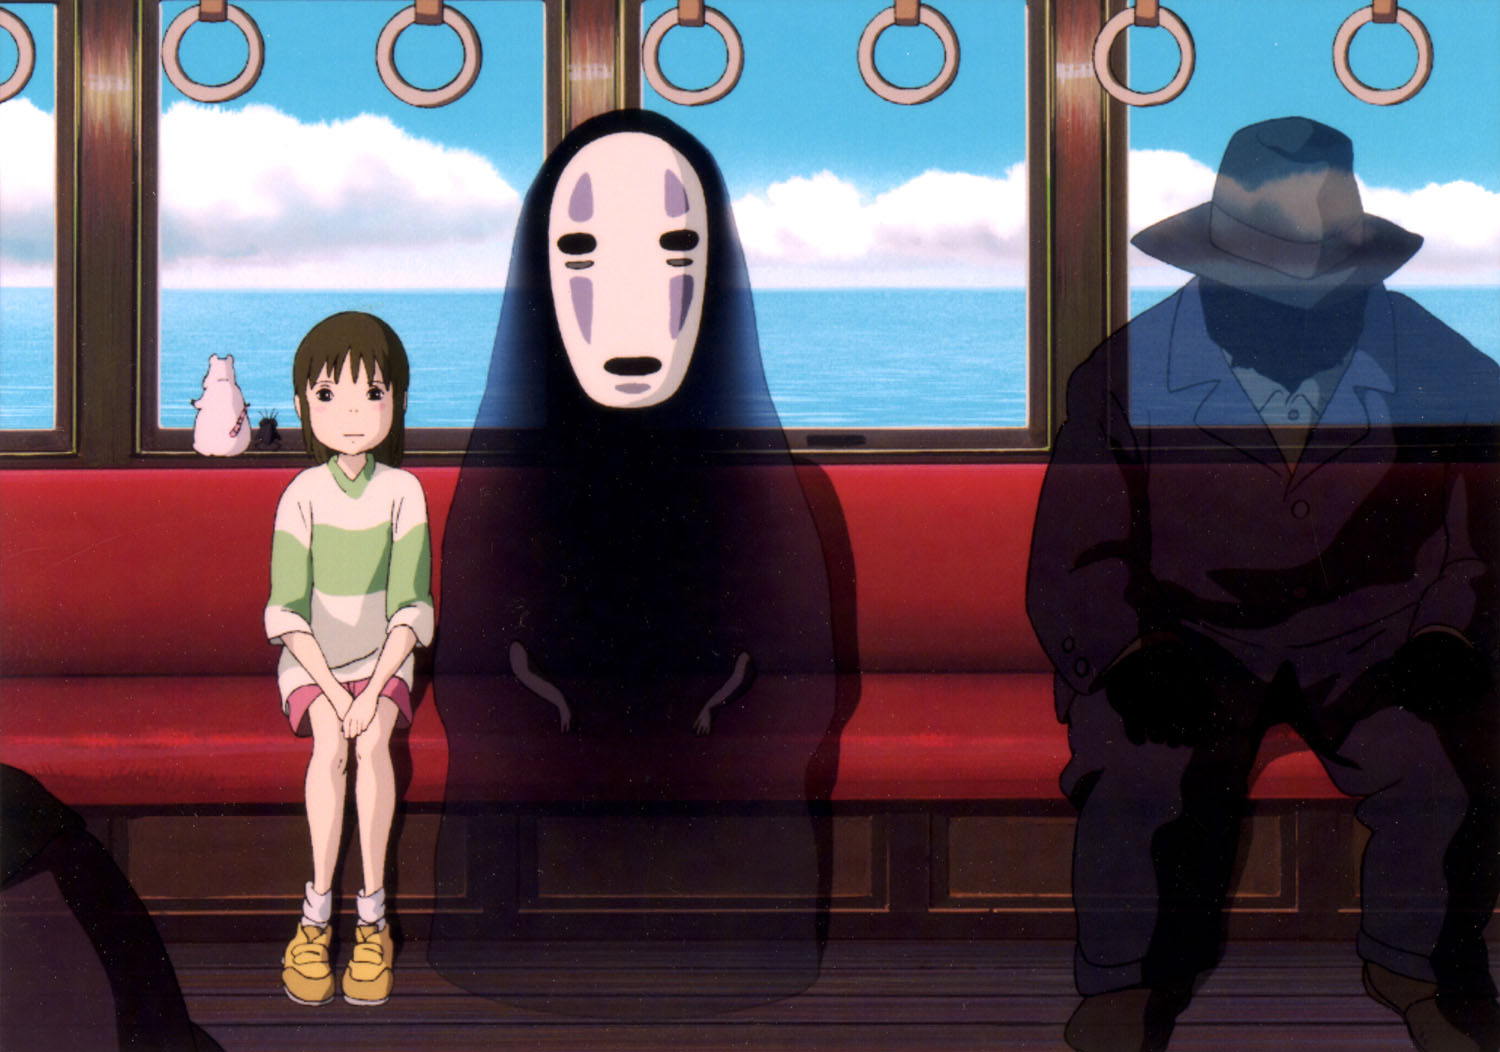 an analysis of the character of chihiro in the film spirited away Spirited away - film analysis  before viewing the film chihiro is a willful, headstrong girl who thinks everyone should fit in with her ideas and meet her needs .